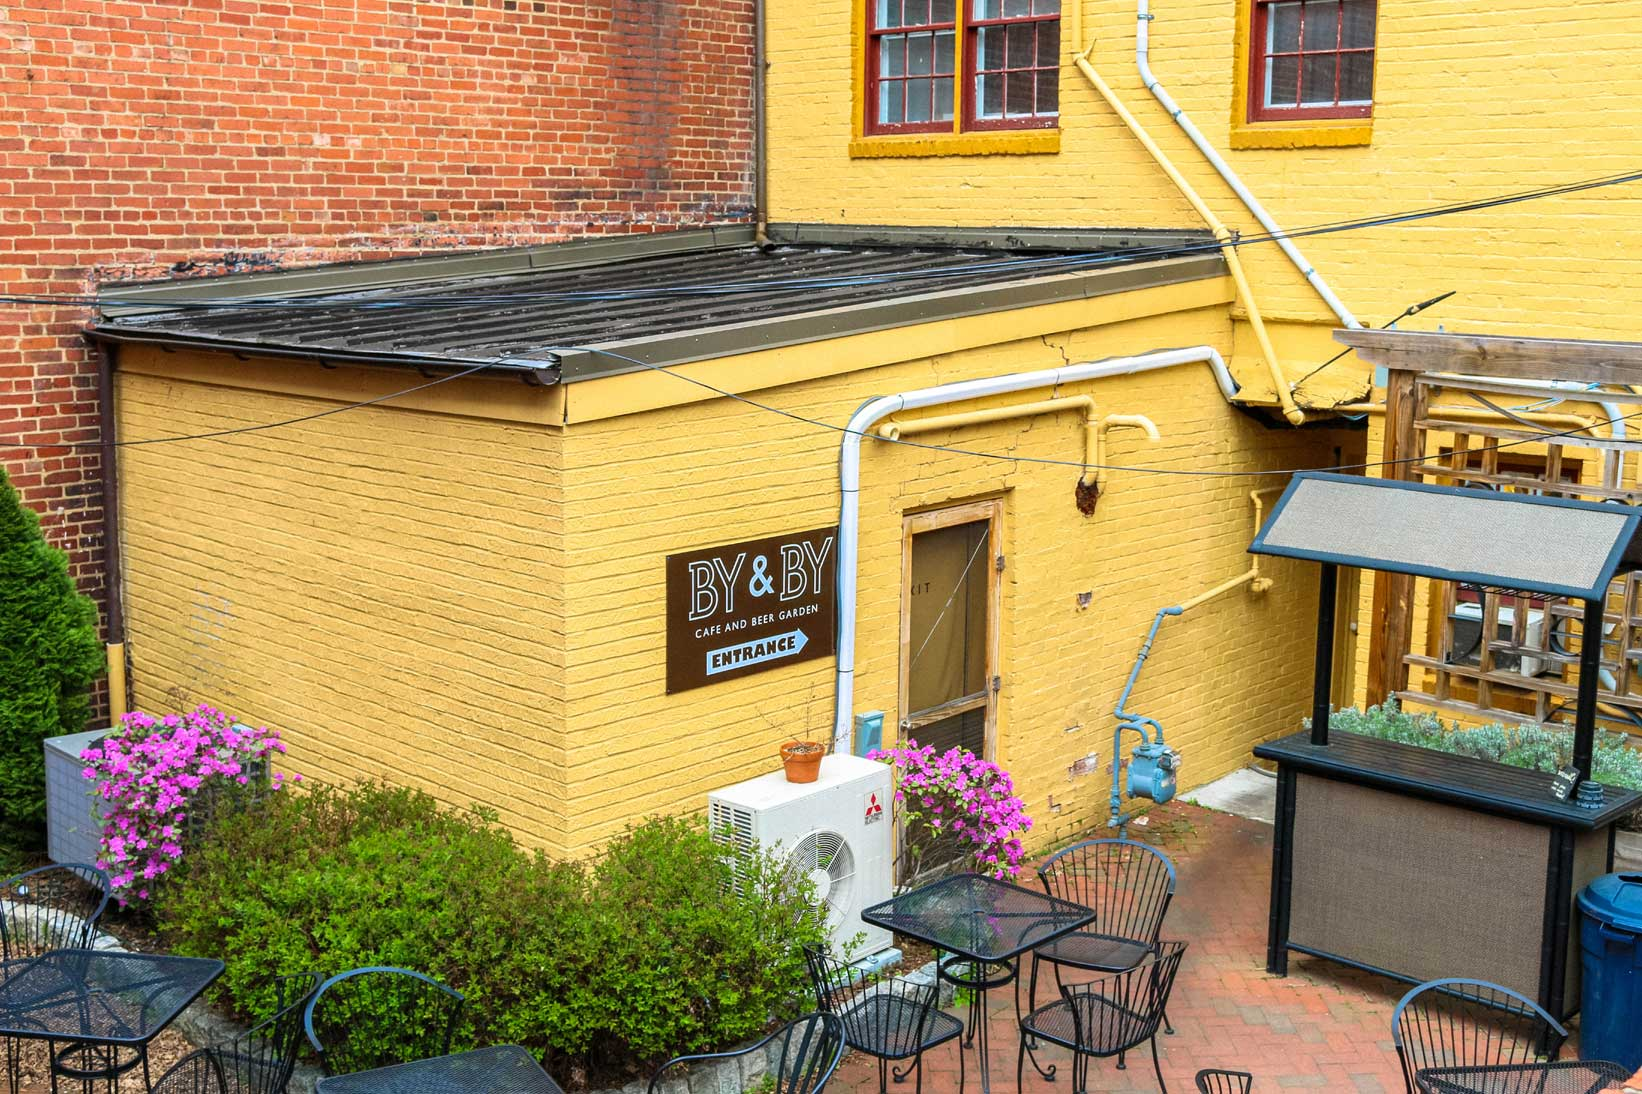 By &  By Beer garden in Staunton, VA